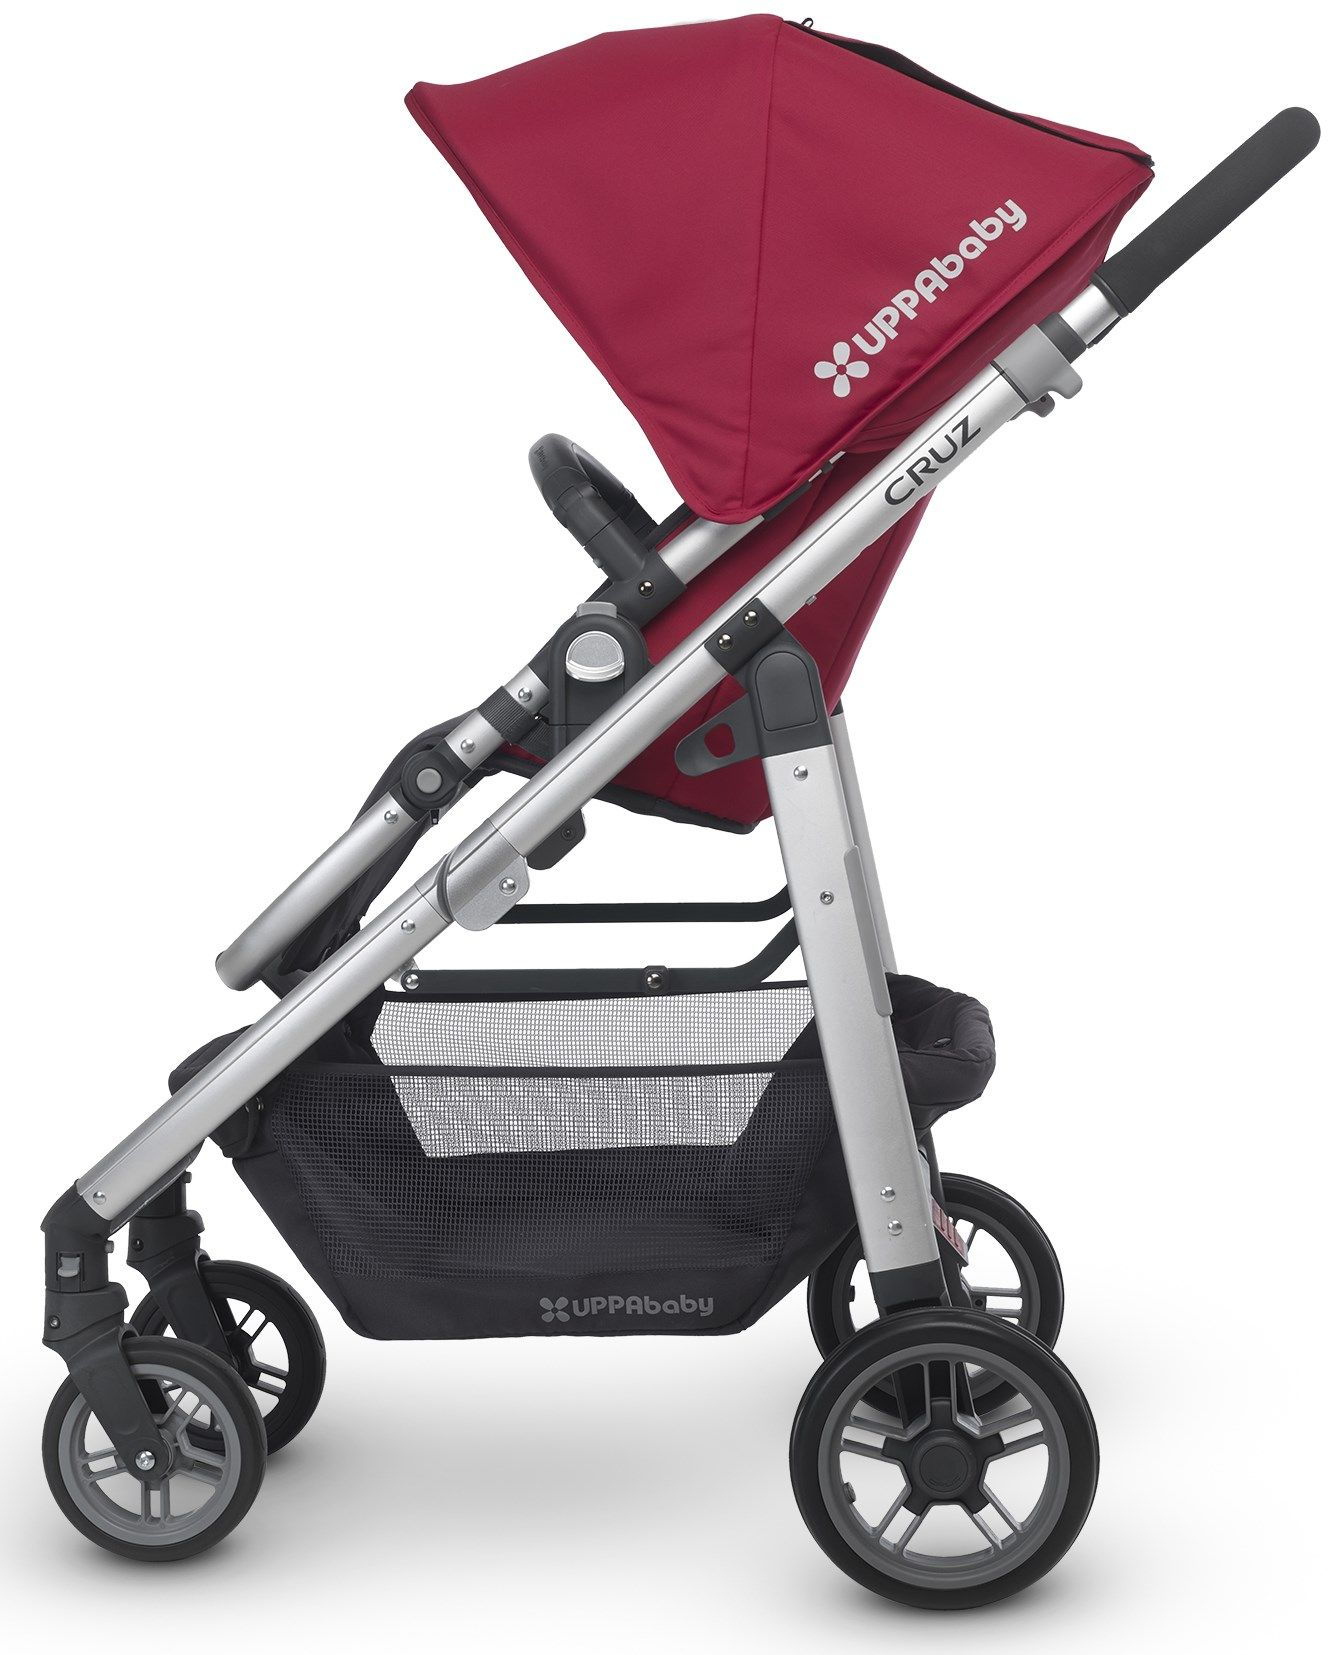 Bugaboo or uppababy for noah grandma cant decide